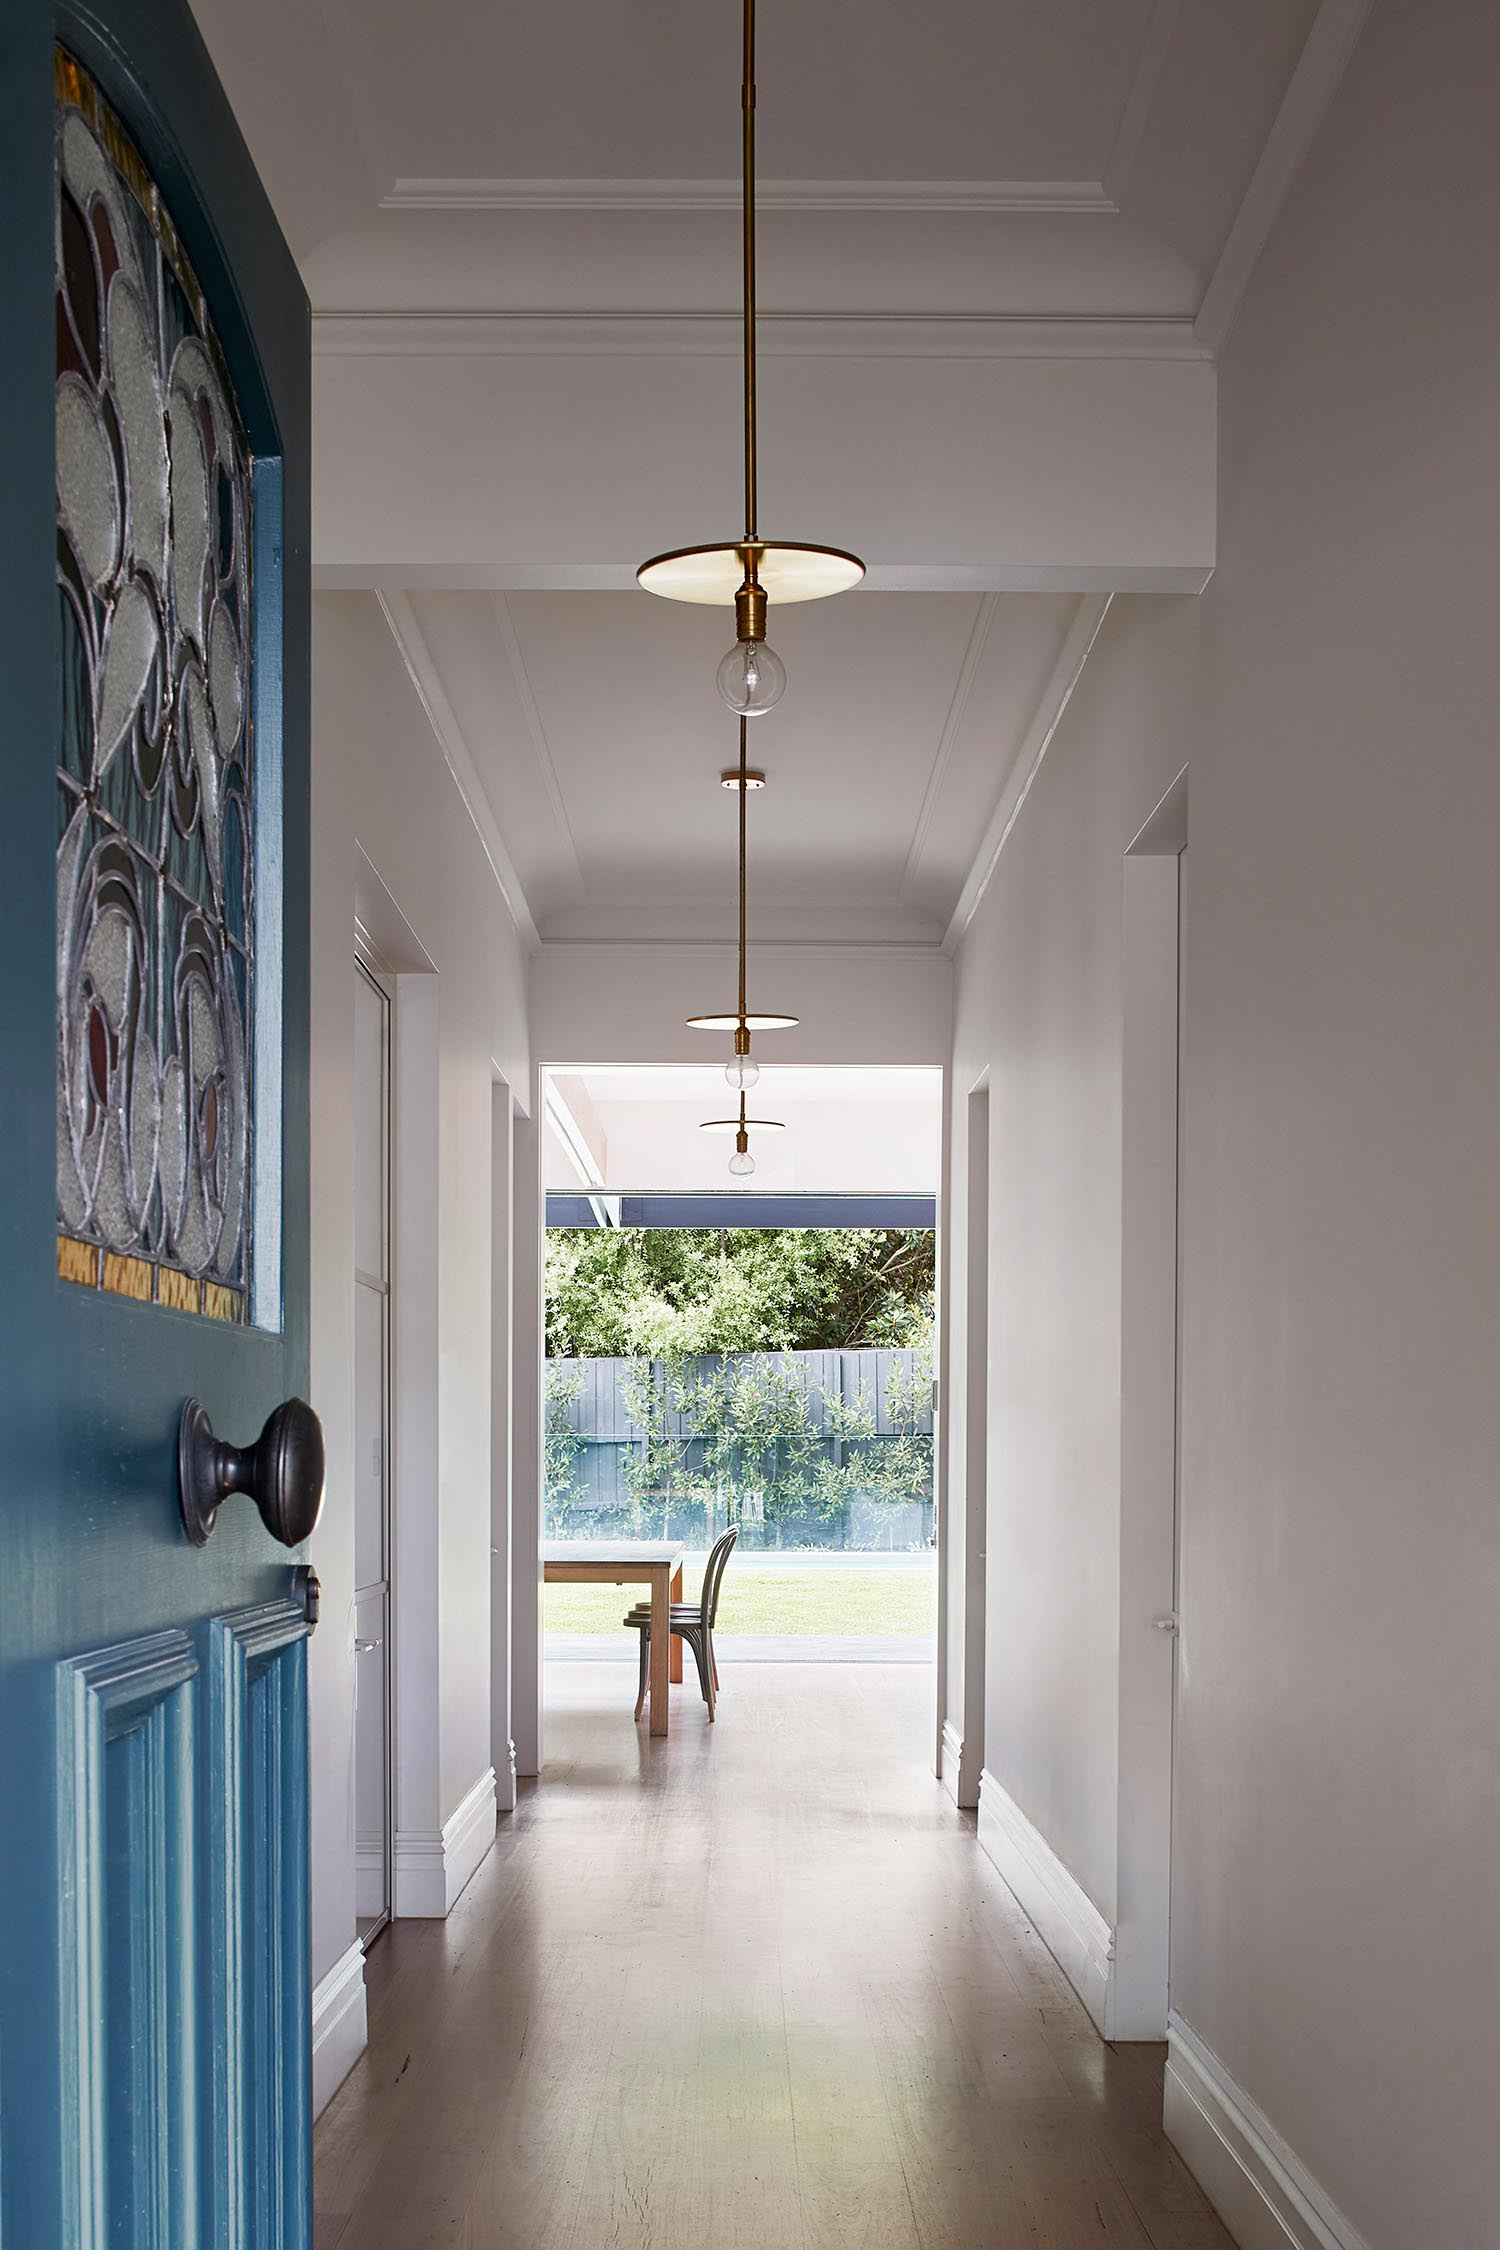 A remodeled house with minimalist lighting in the entry hallway.